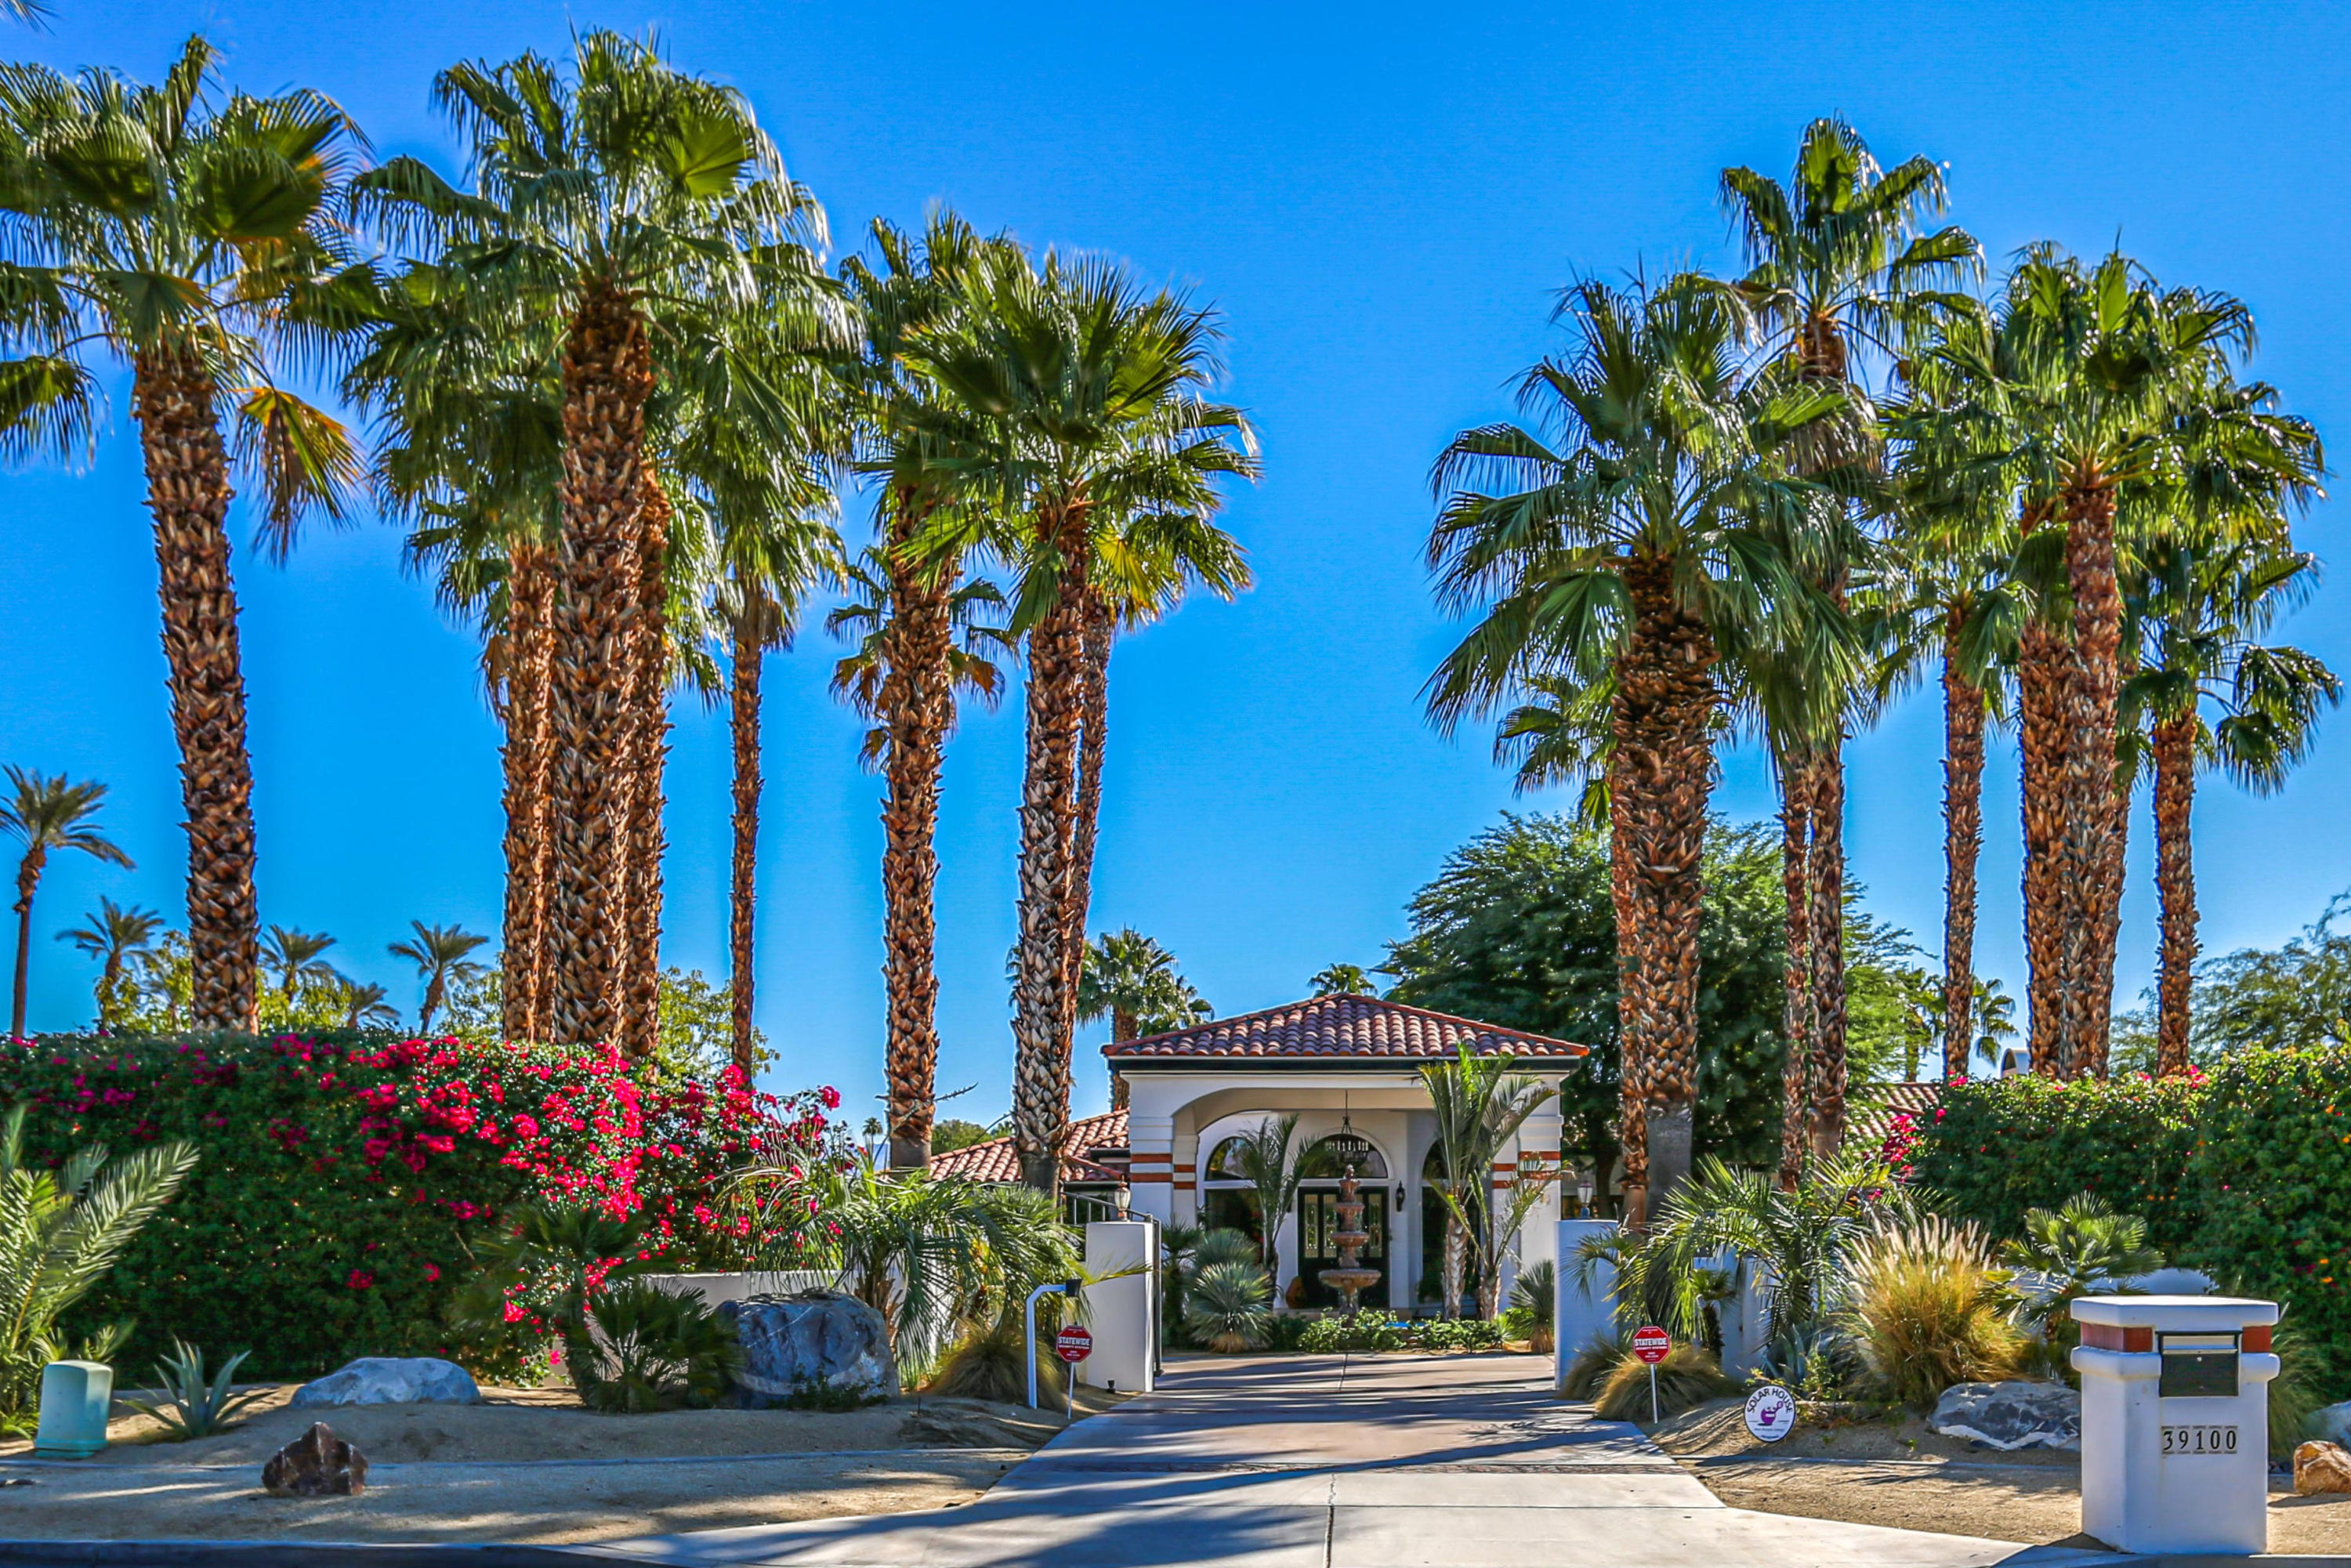 Photo of 39100 Vista Dunes, Rancho Mirage, CA 92270